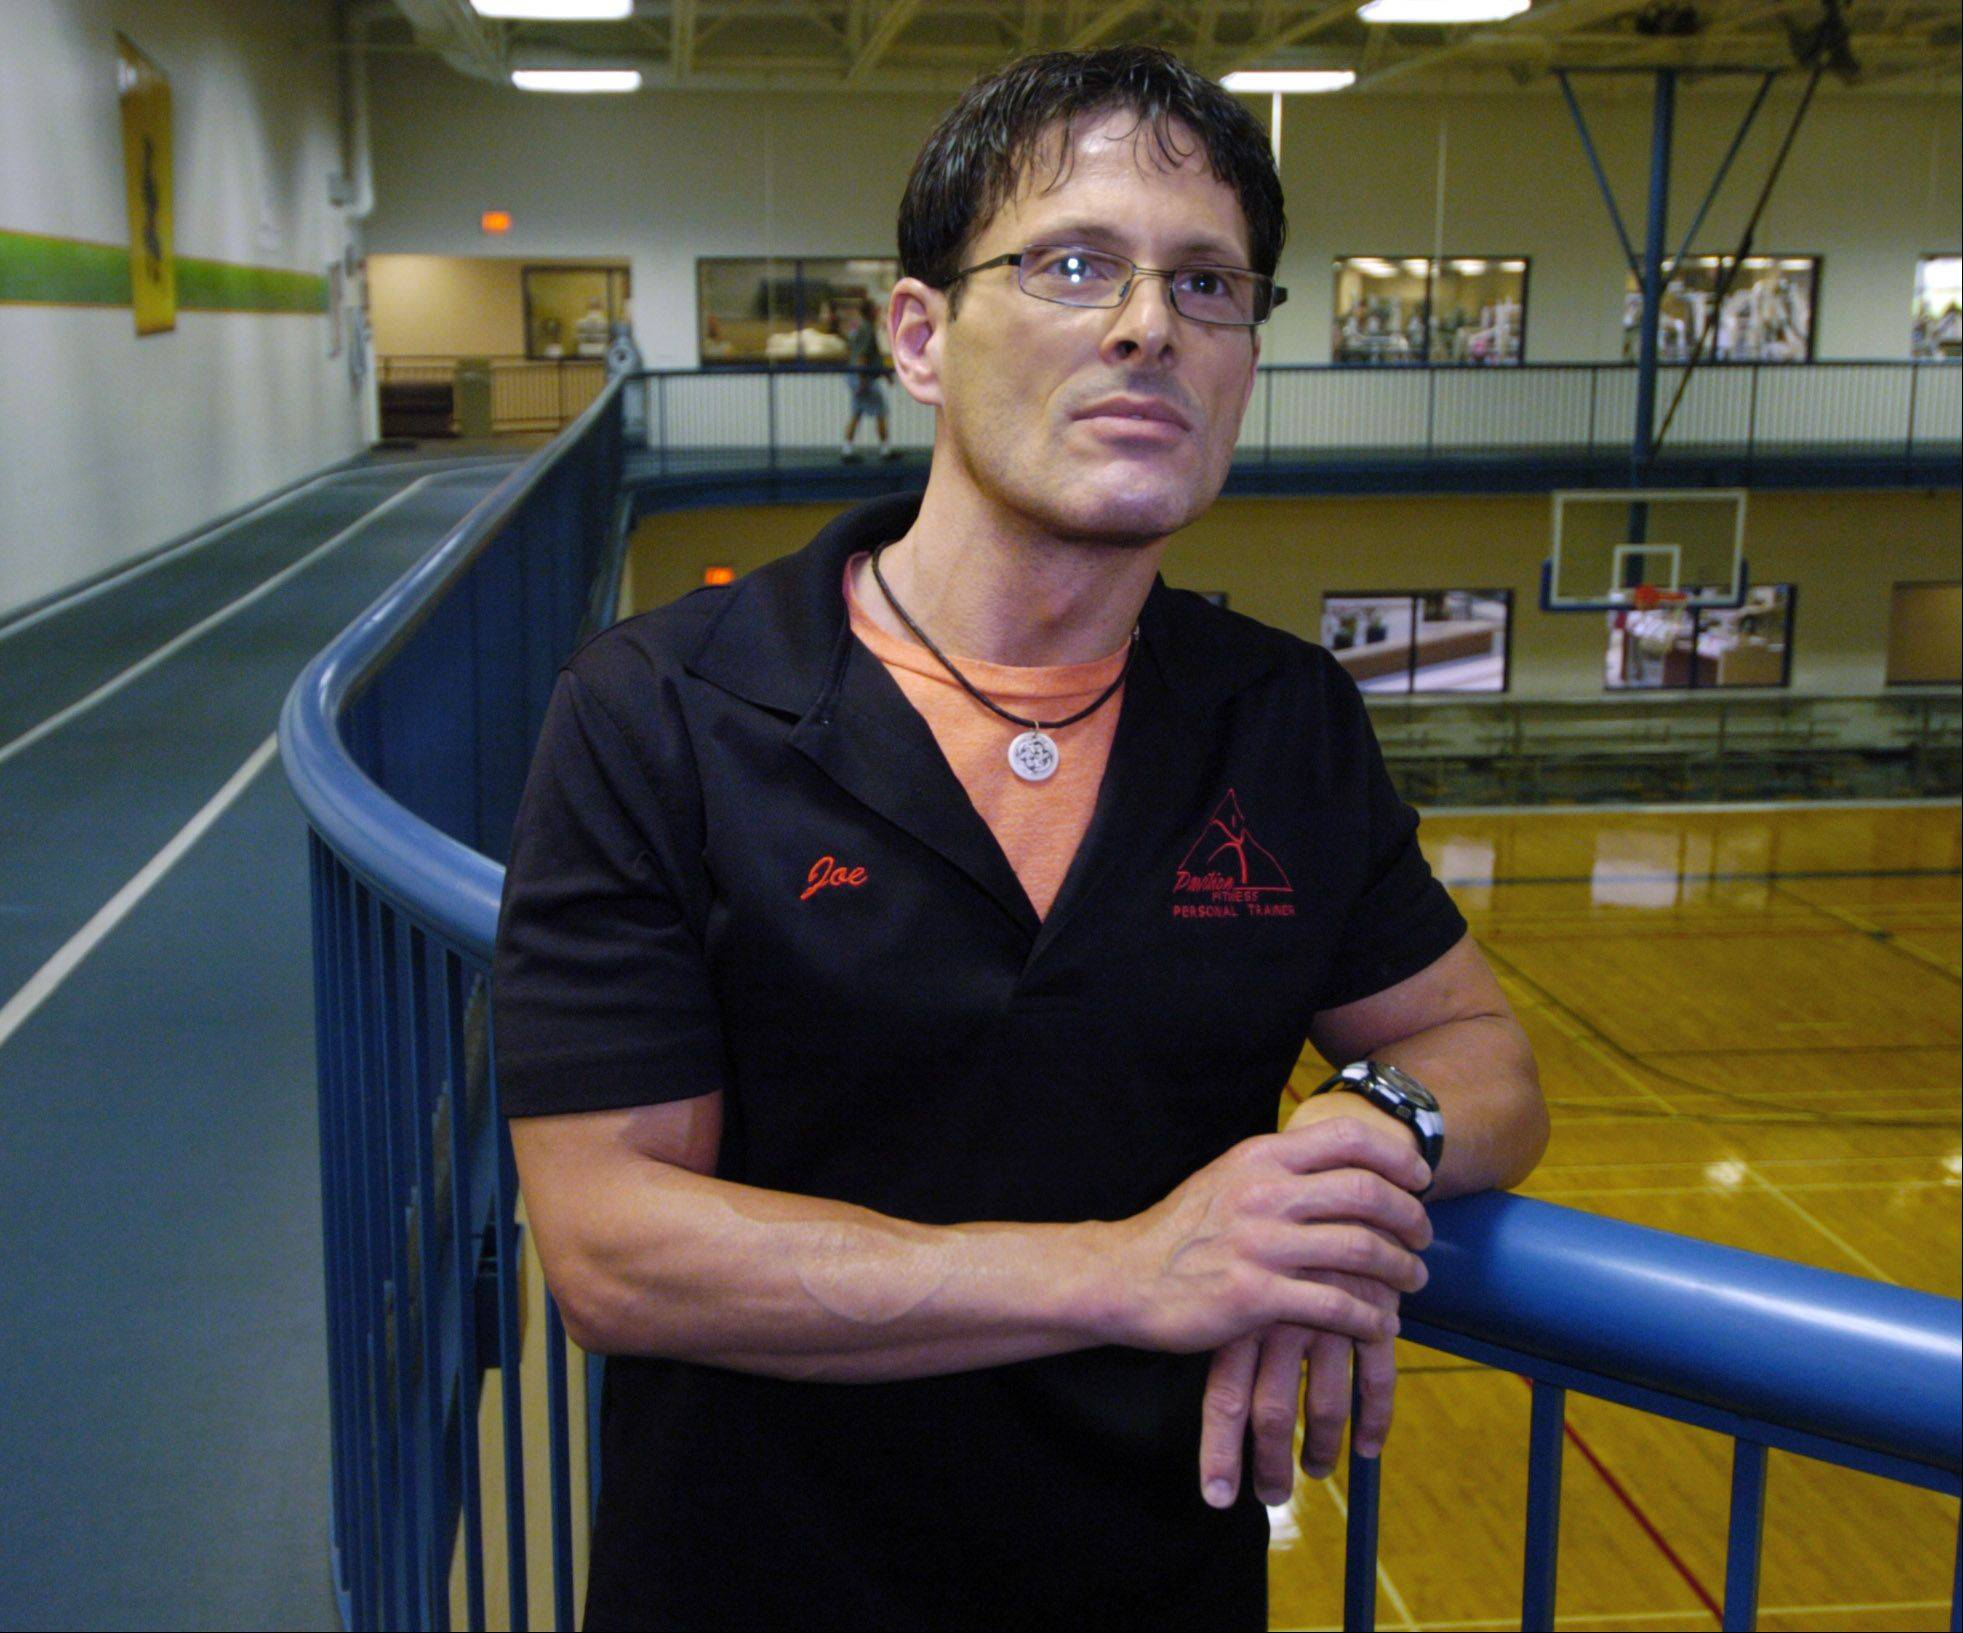 Joe Pignone, a master personal trainer at the Pavilion Fitness Club in Elk Grove Village, saved the life of a man who had collapsed Saturday on the facility's indoor track. It is the second time in two years Pignone is being credited with saving a club member's life.